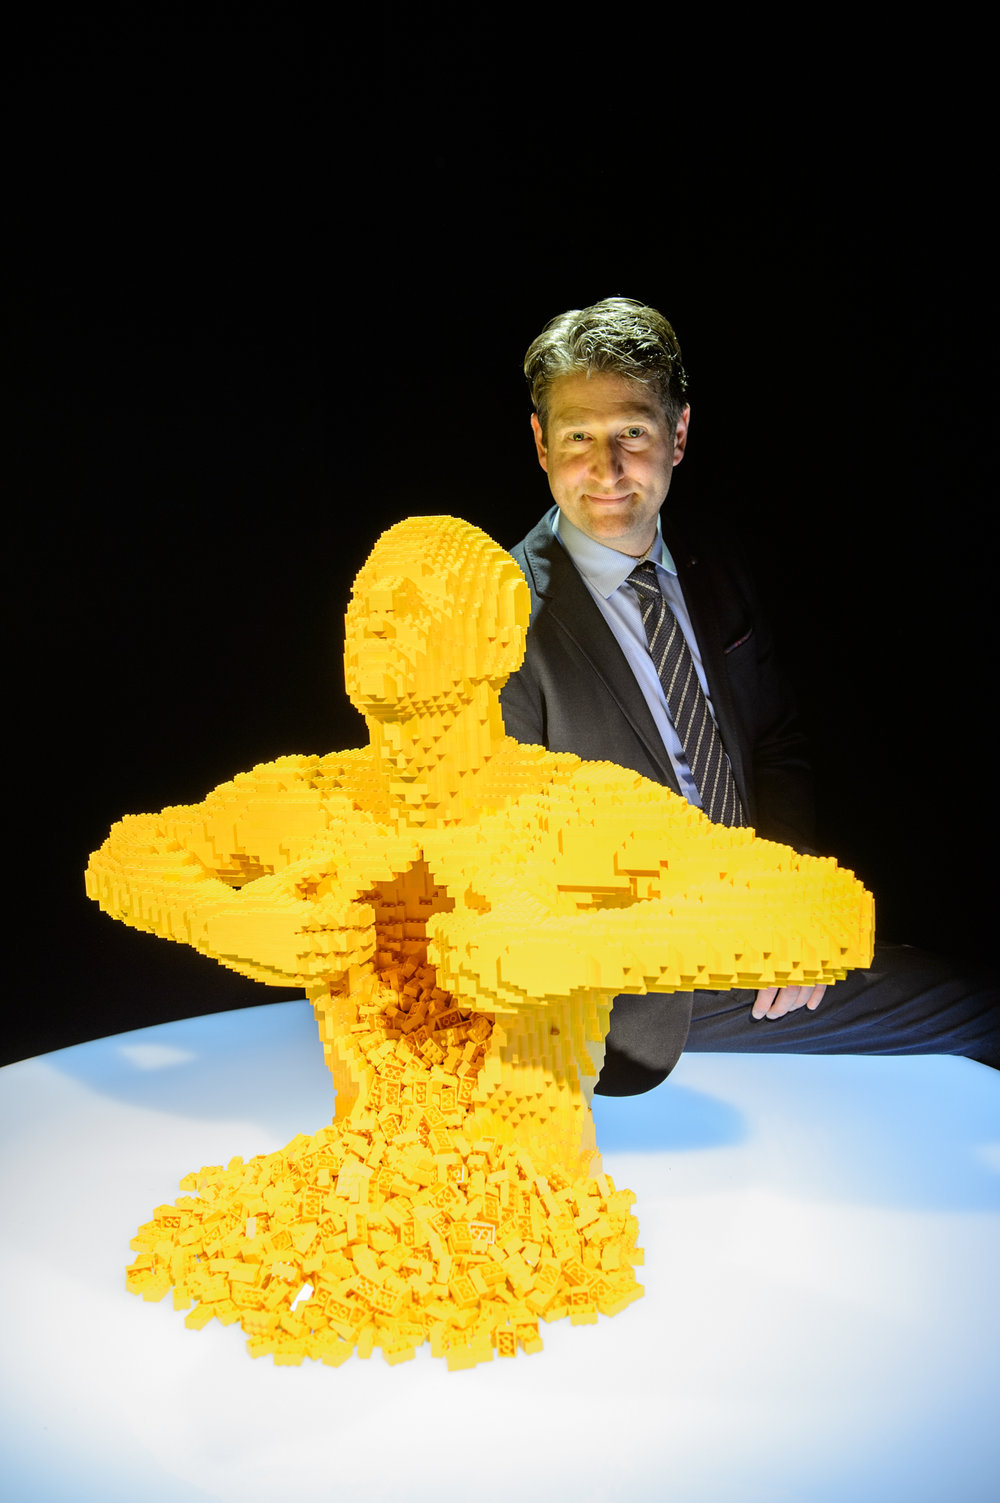 the-art-of-the-brick-credito-divulgacao-24.jpg